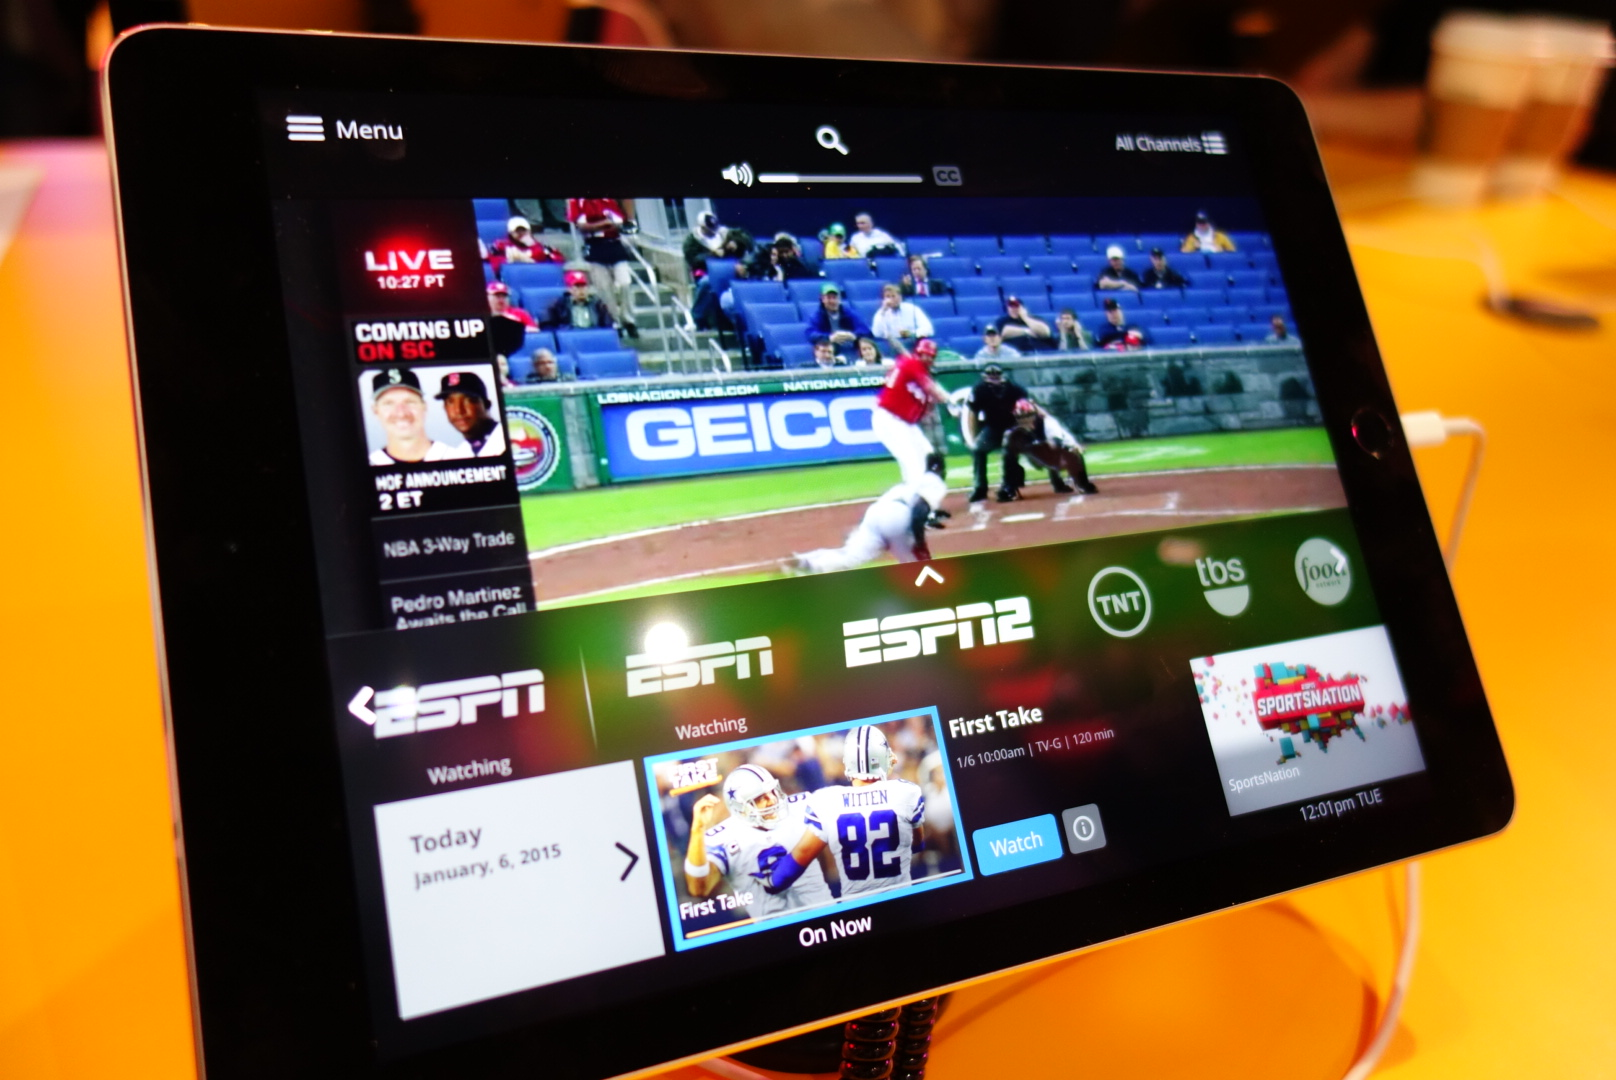 5 Things To Consider Before Spending $20/Month On Sling TV